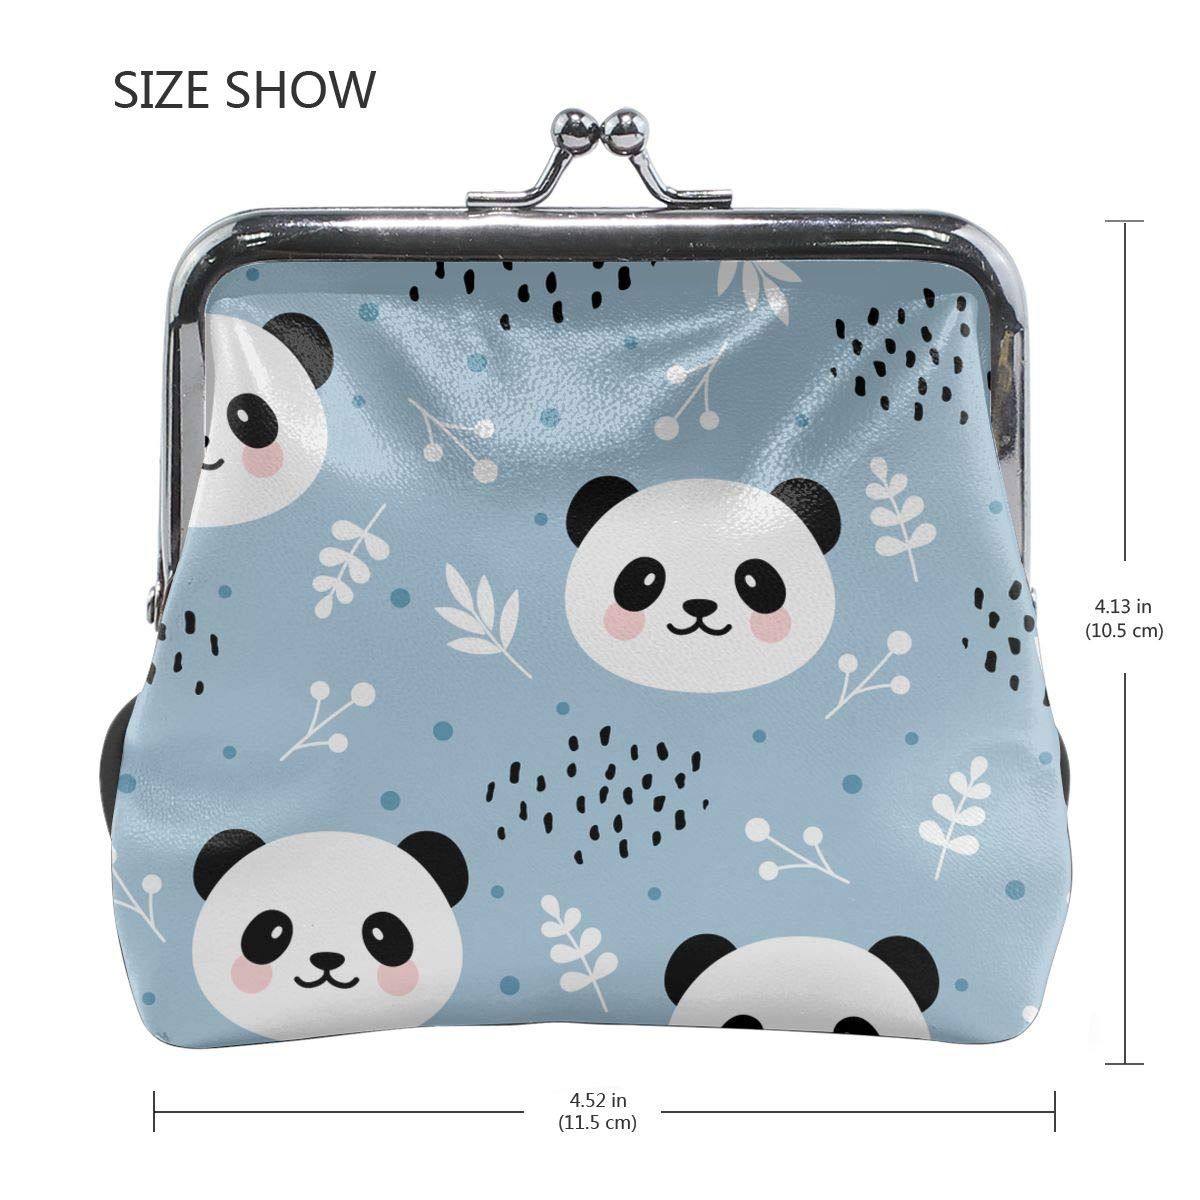 Cute Panda With Flowers And Dots Women Girl Canvas Floral Coin Purse Clutch Pouch Wallet